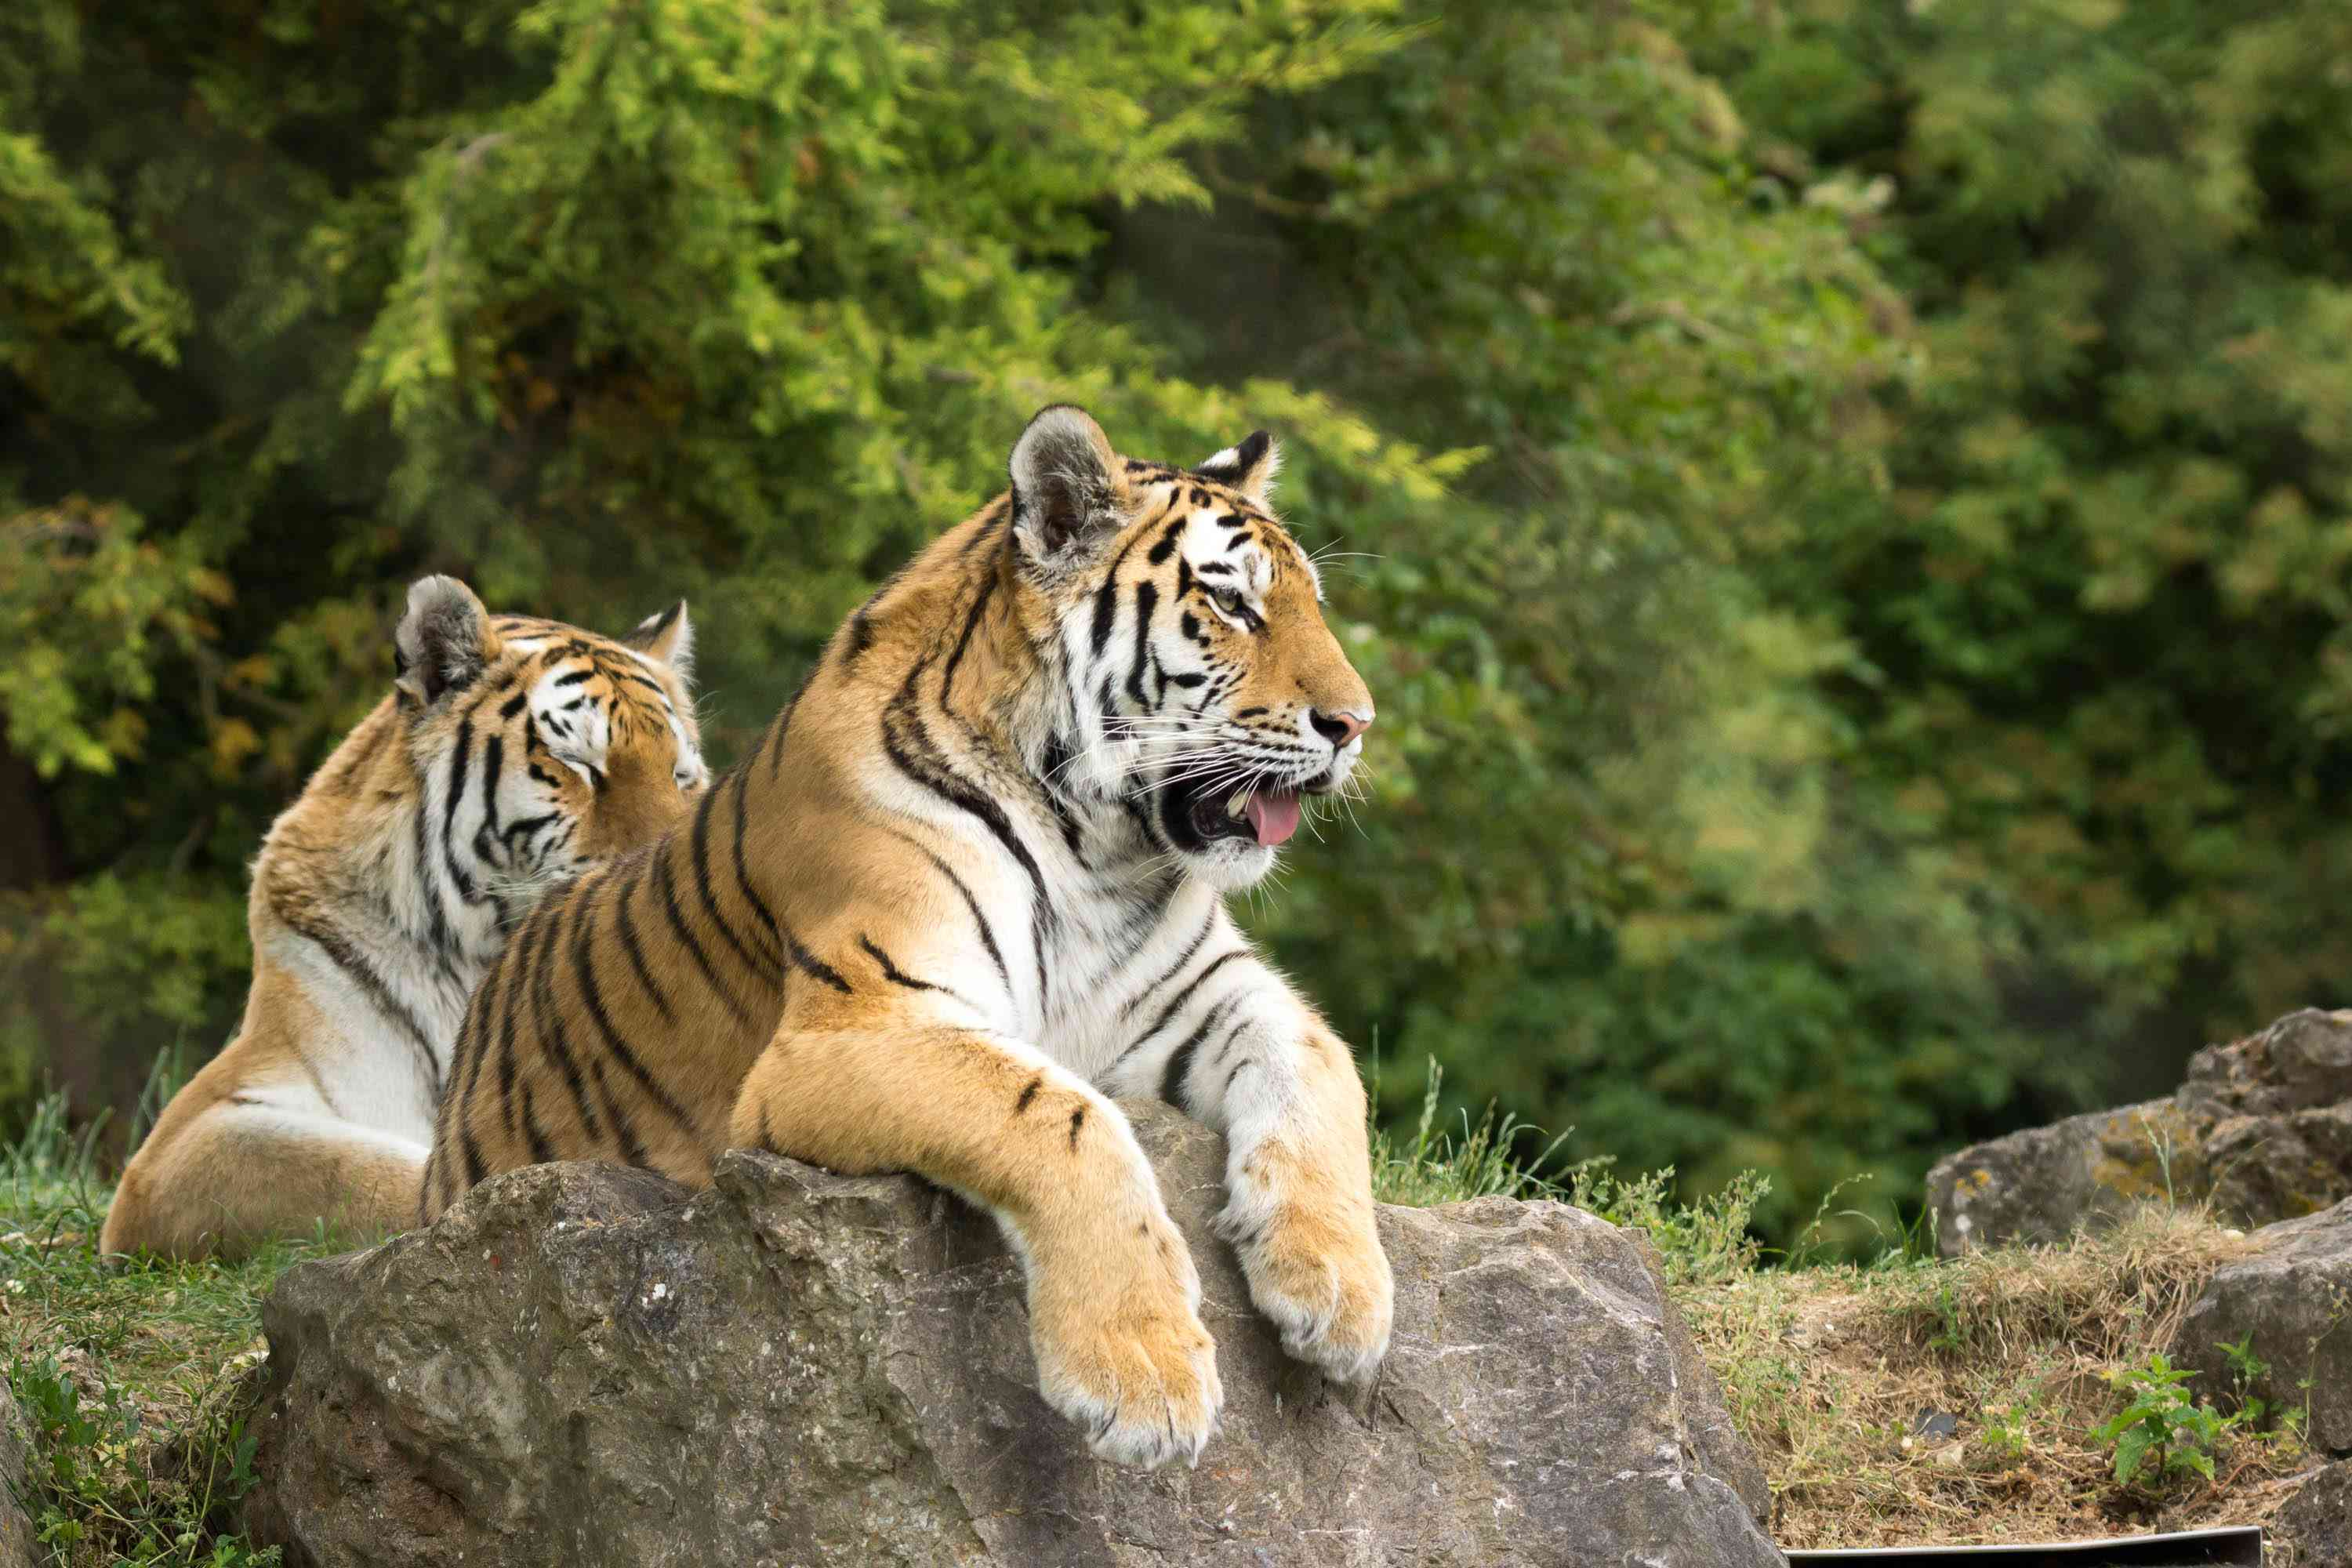 Tigers at Marwell Zoo